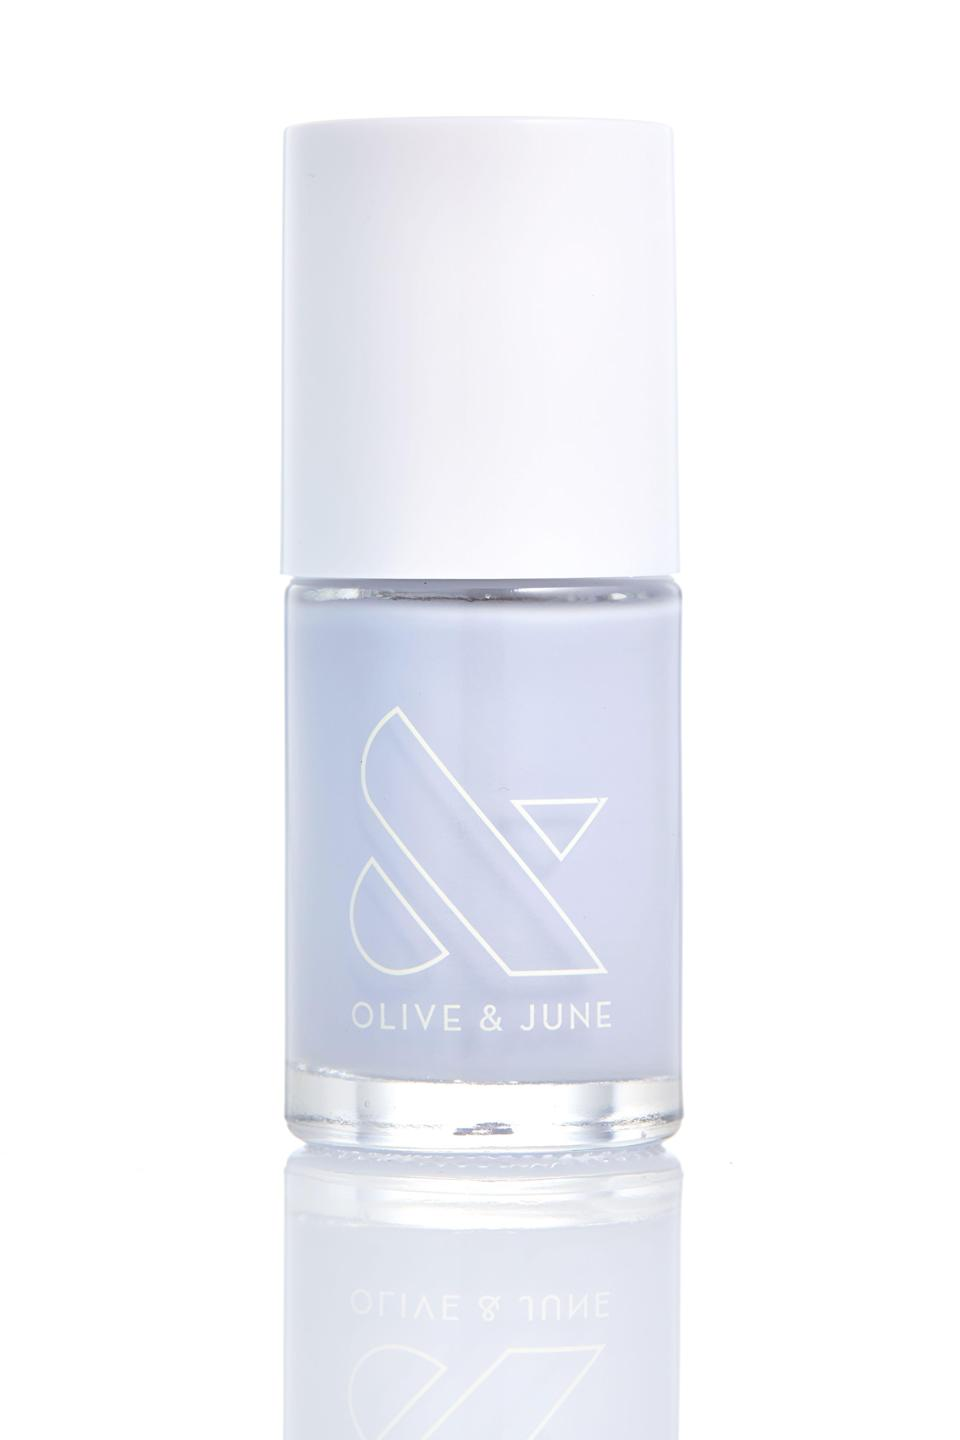 """<p>Consider this frosty hue the much cooler older sister to that crusty bottle of blue polish you've had since you still shopped at Claire's... but just can't part with because it's the <em>perfect</em> shade.</p><br><br><strong>Olive & June</strong> Nail Polish in Barrett, $8, available at <a href=""""https://olivejune.com/collections/nail-polish/products/barrett"""" rel=""""nofollow noopener"""" target=""""_blank"""" data-ylk=""""slk:Olive & June"""" class=""""link rapid-noclick-resp"""">Olive & June</a>"""